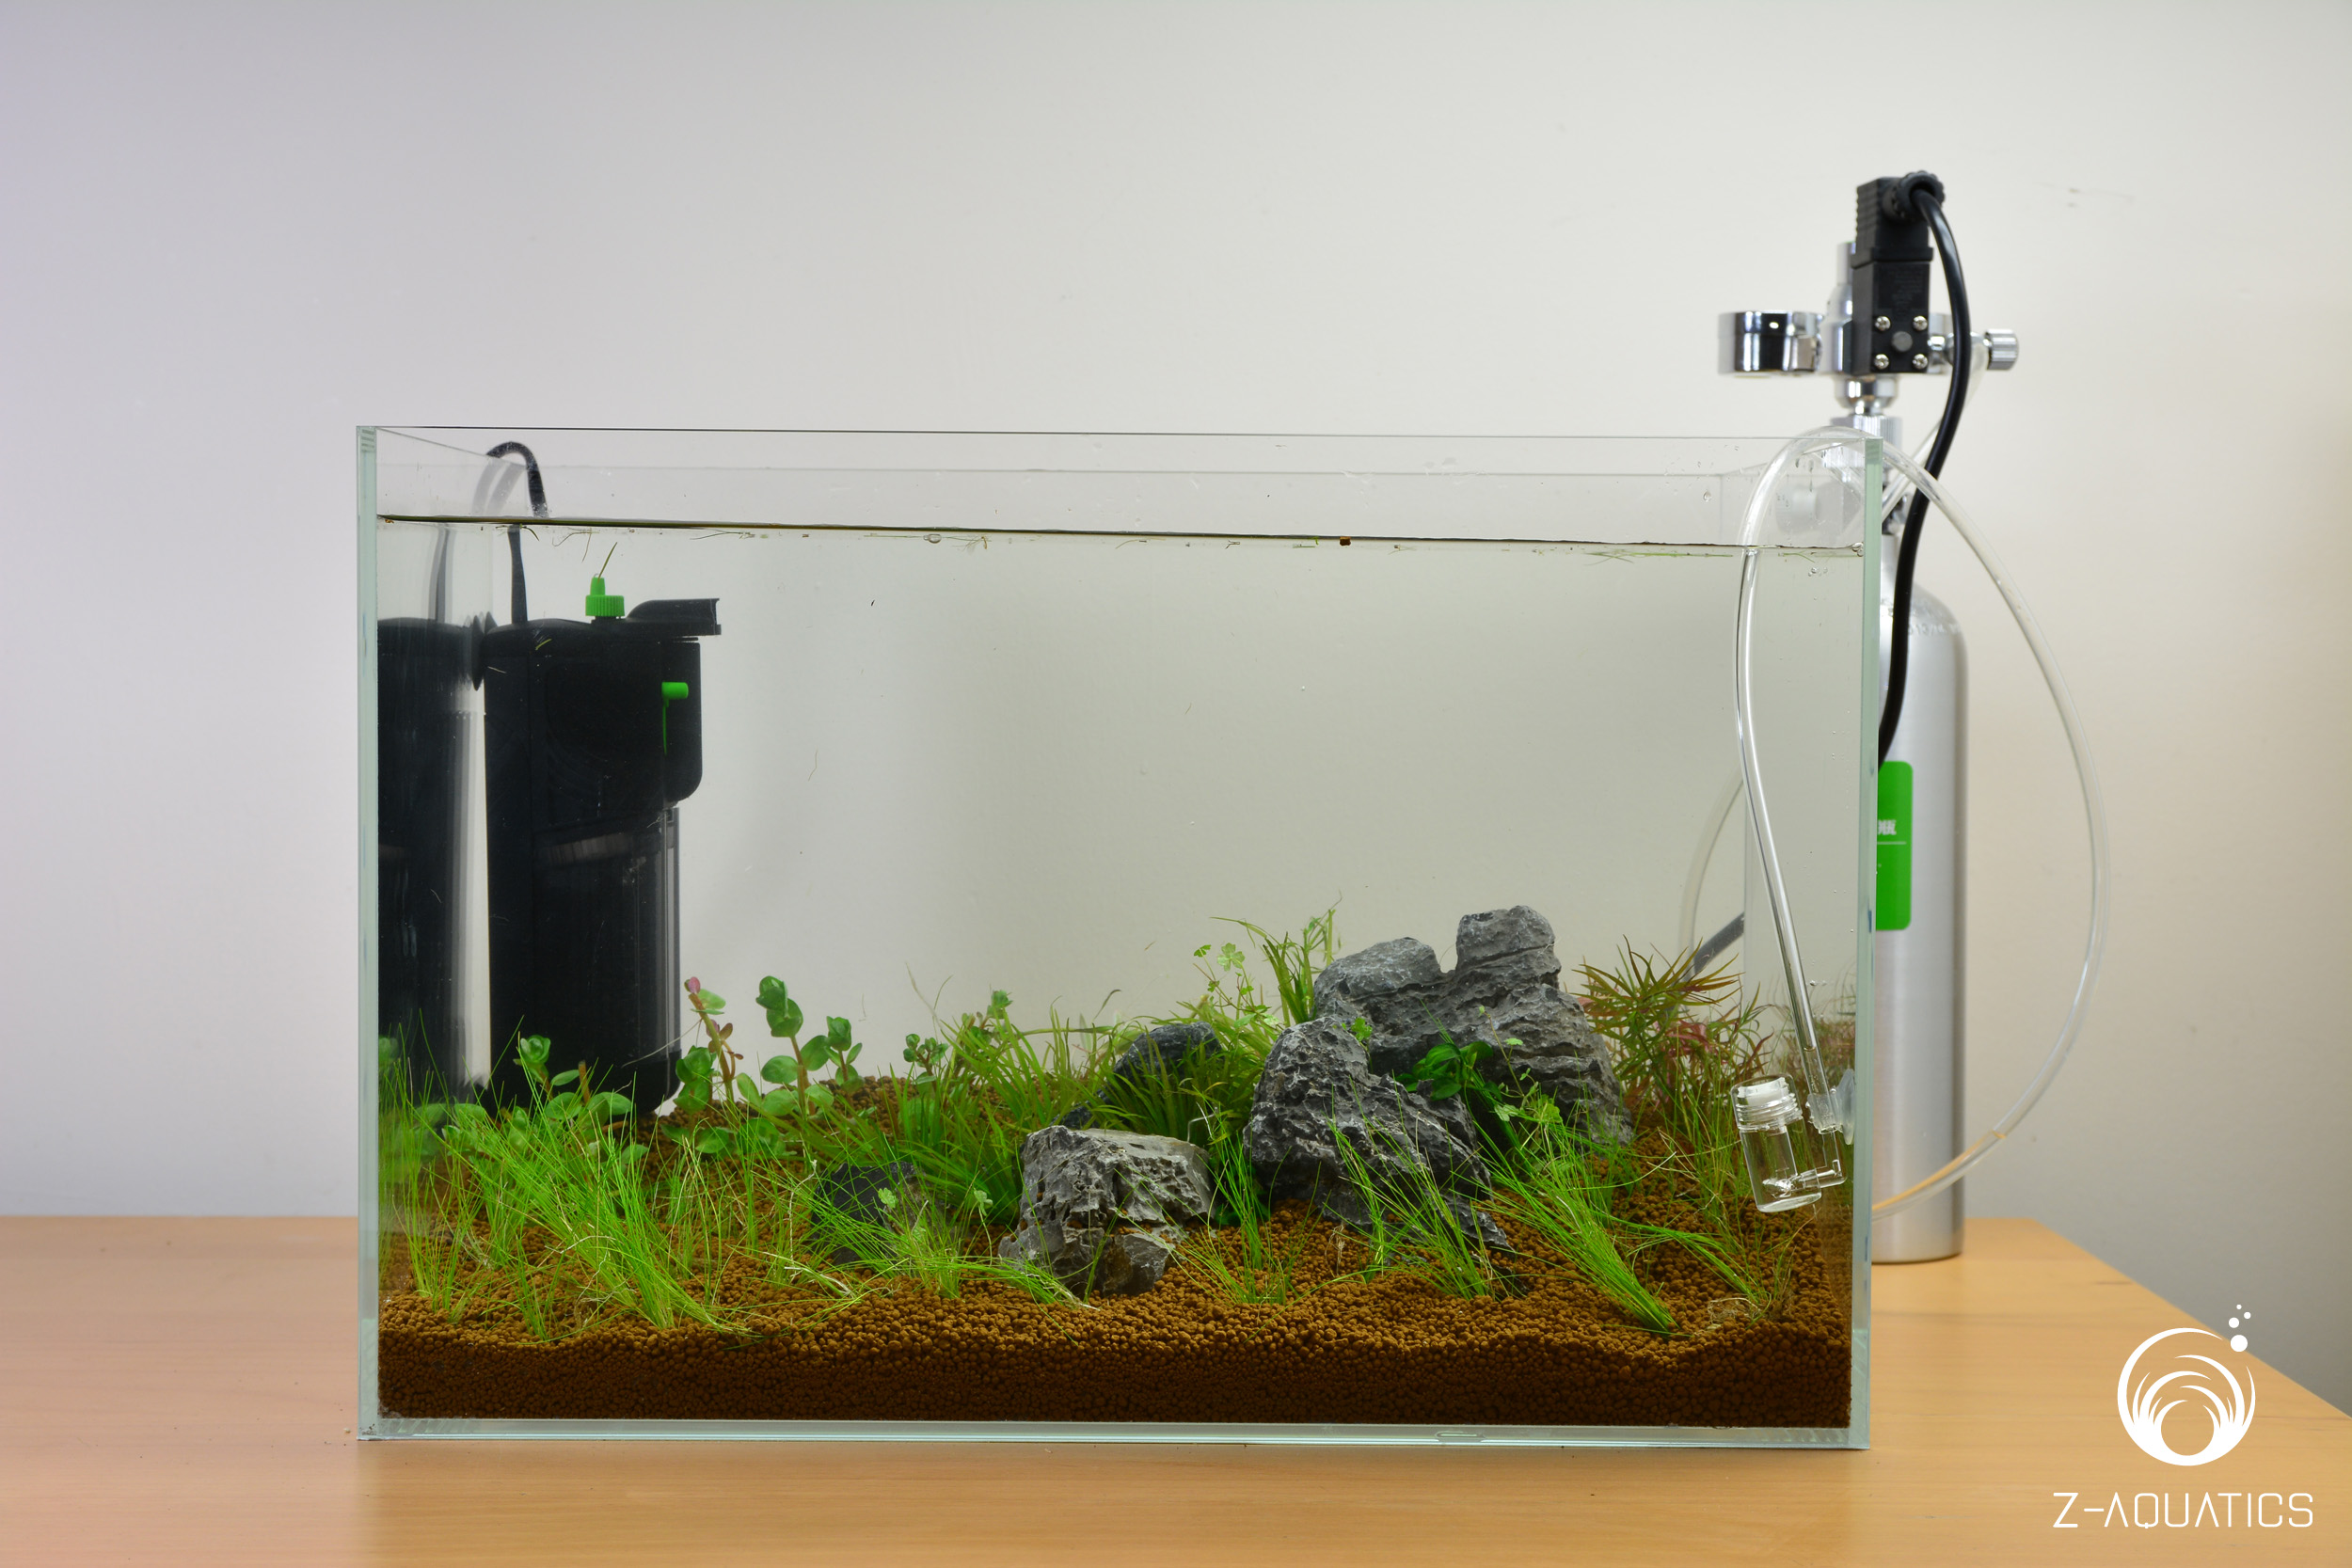 A guide for setting up a basic planted aquarium z aquatics for How to set up a fish tank filter